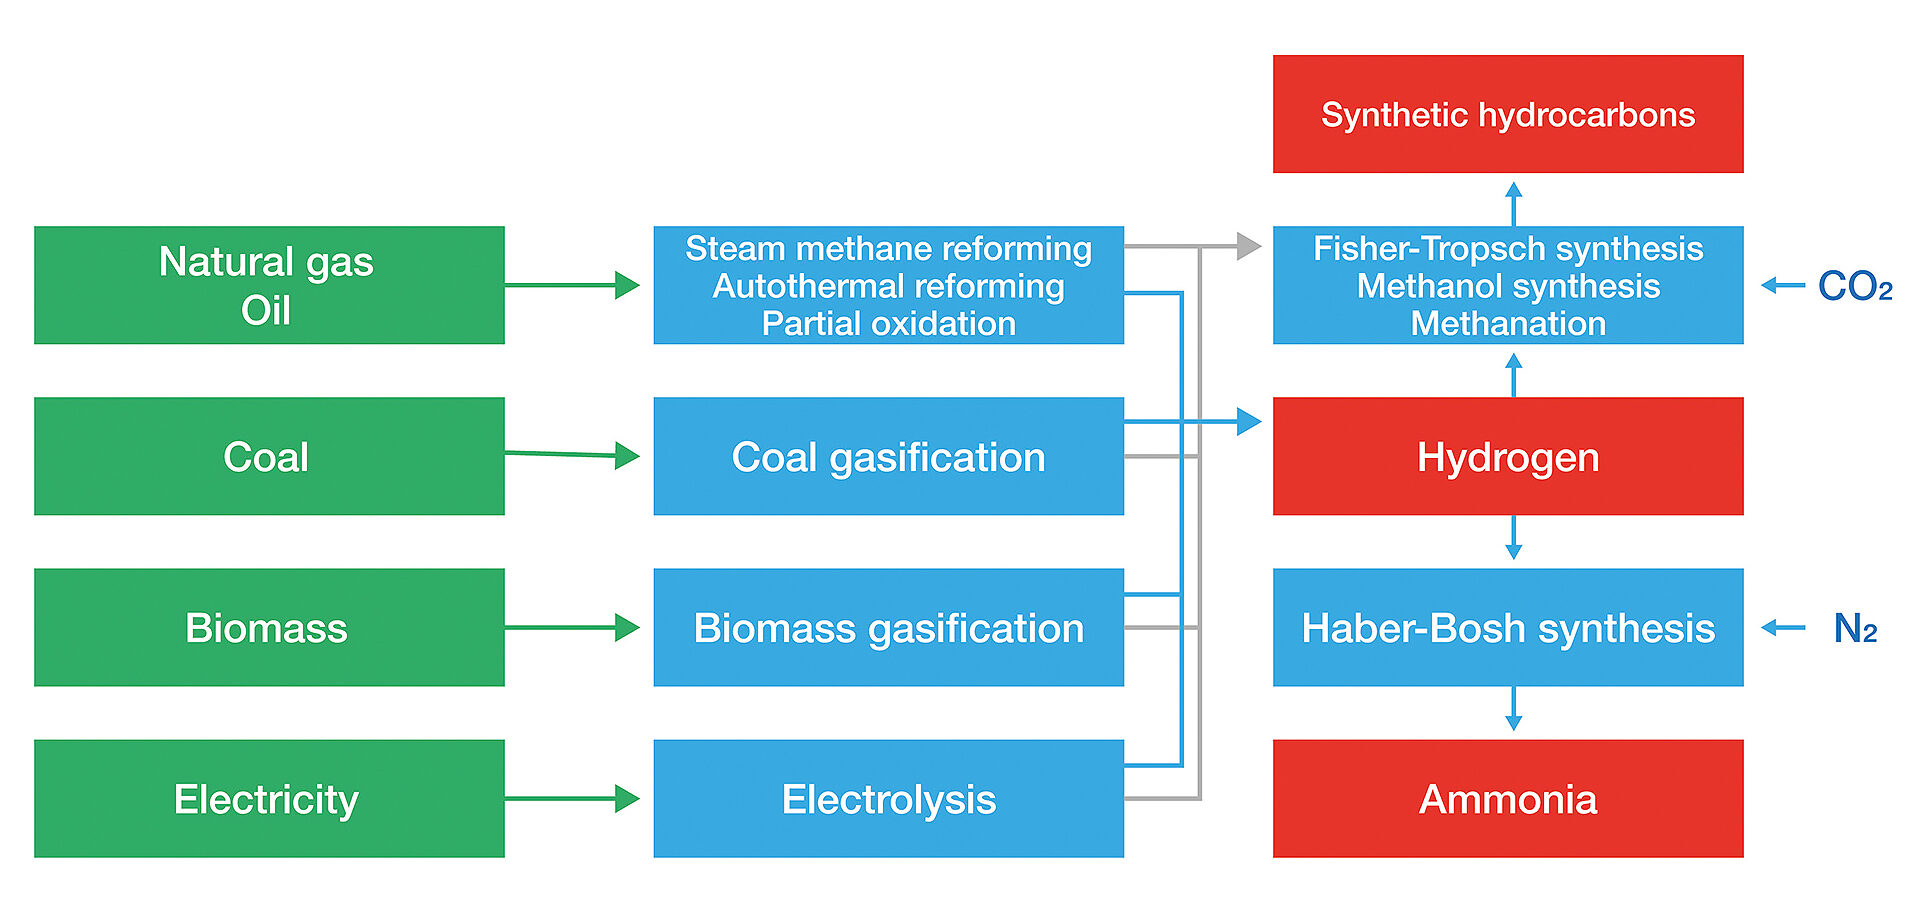 Summary of the different methods of hydrogen production